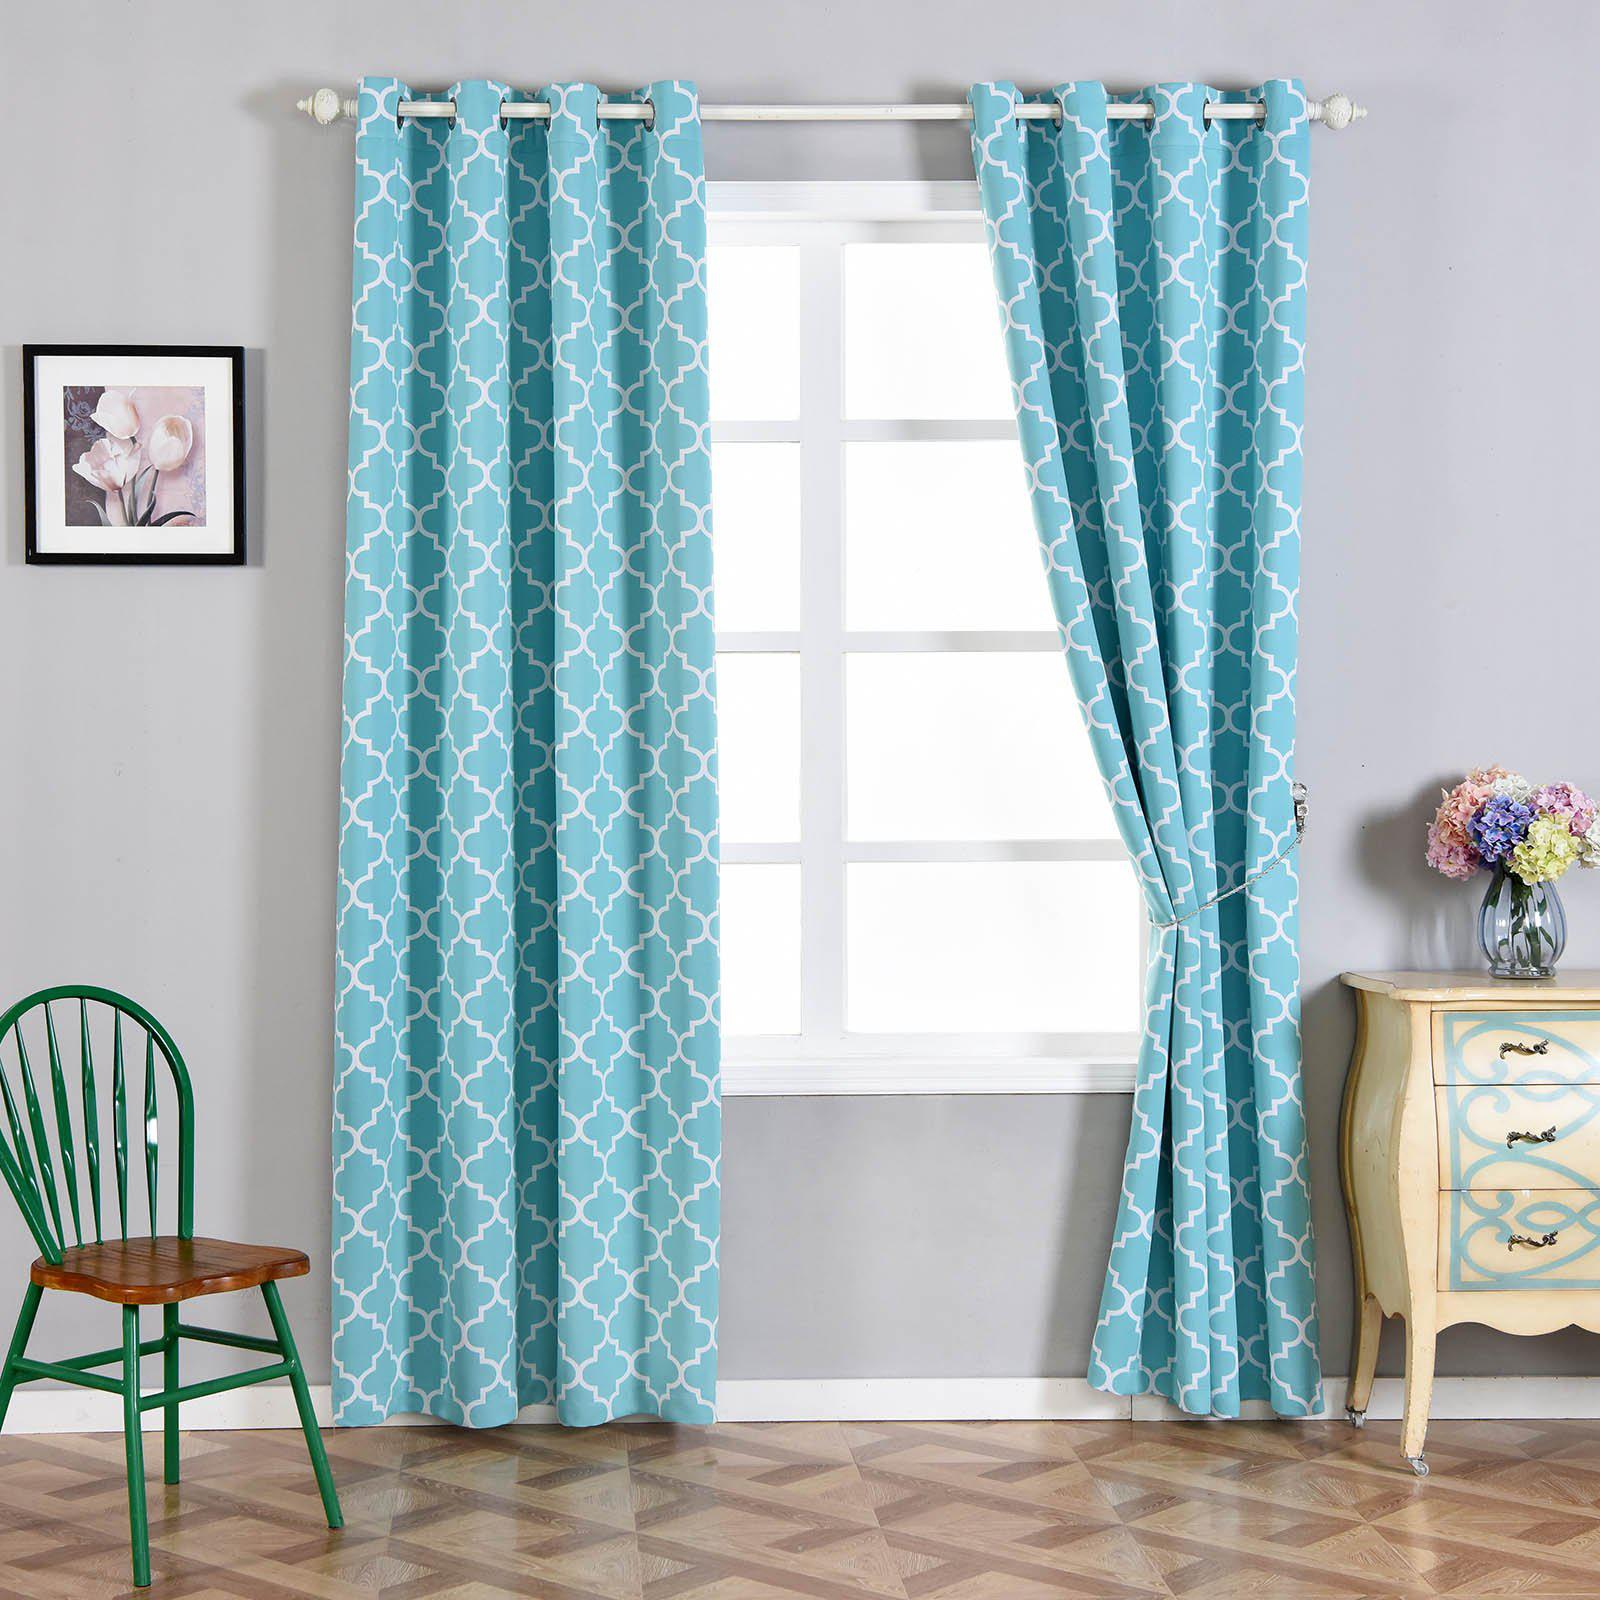 Lattice Print Curtains | Pack of 2 | White & Turquoise Blackout Curtains | 52 x 108 Inch Grommet ...